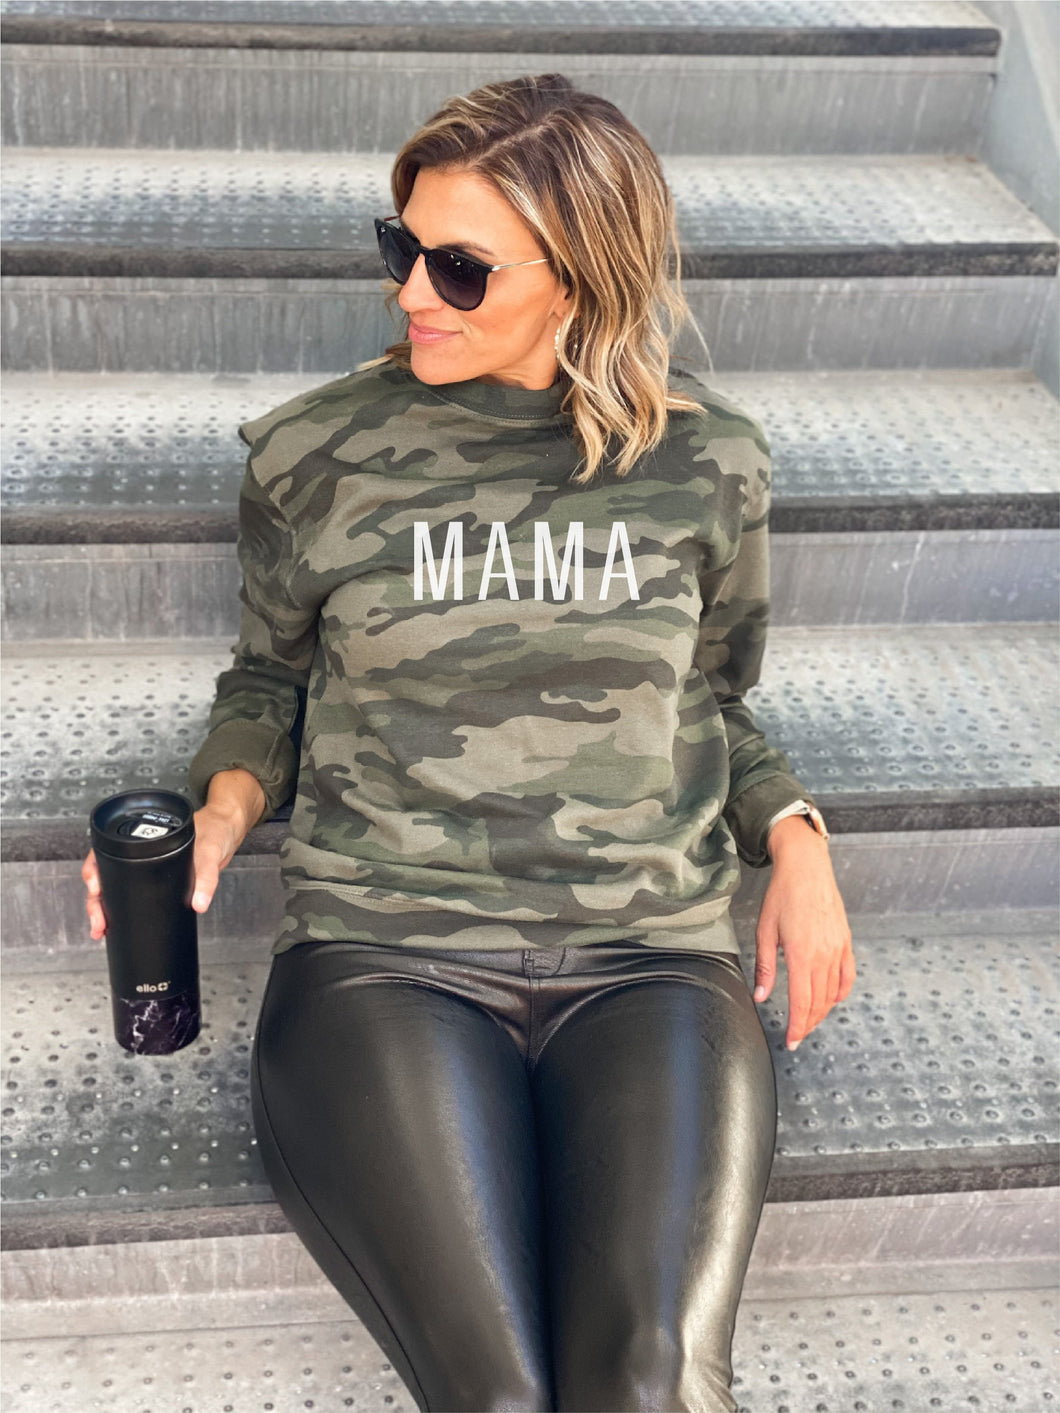 Mama camo sweatshirt Fall sweatshirt Independent Trading company lightweight sweatshirt